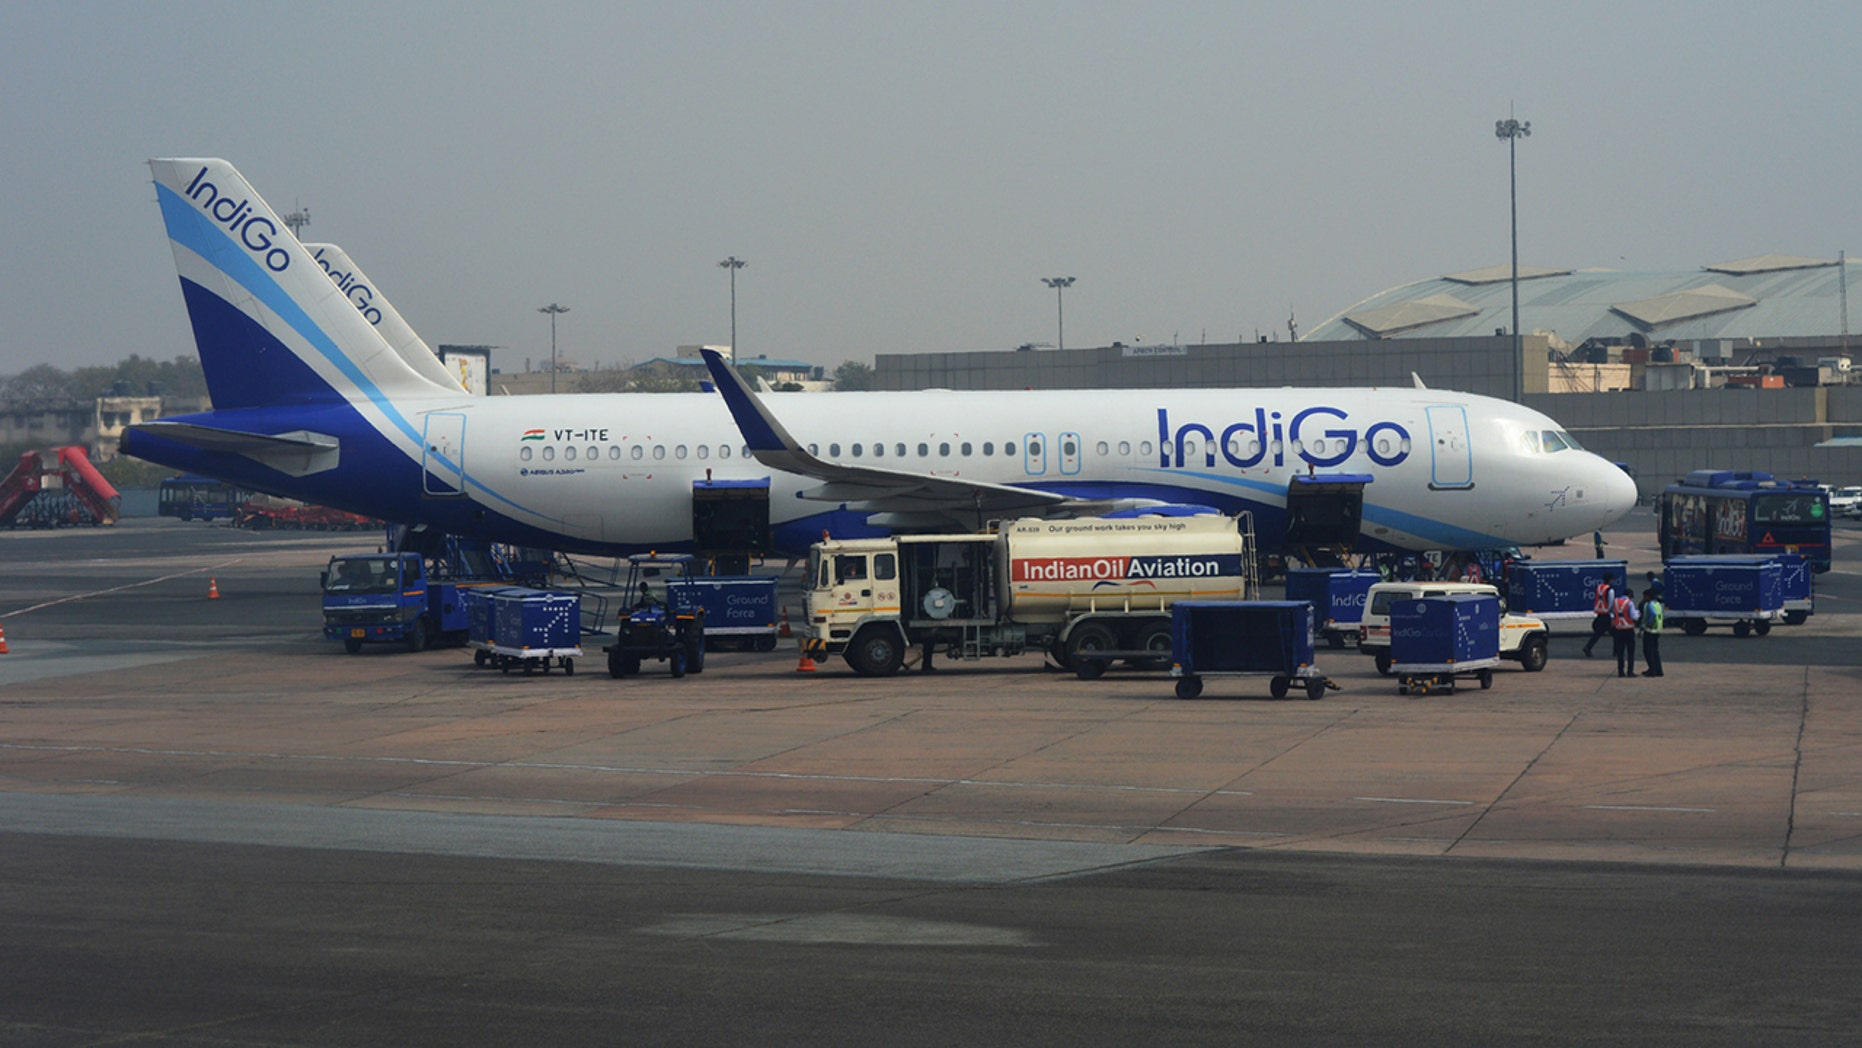 The IndiGo passenger is accused of pressing against the flight attendant's back, and then verbally abusing her when she confronted him.